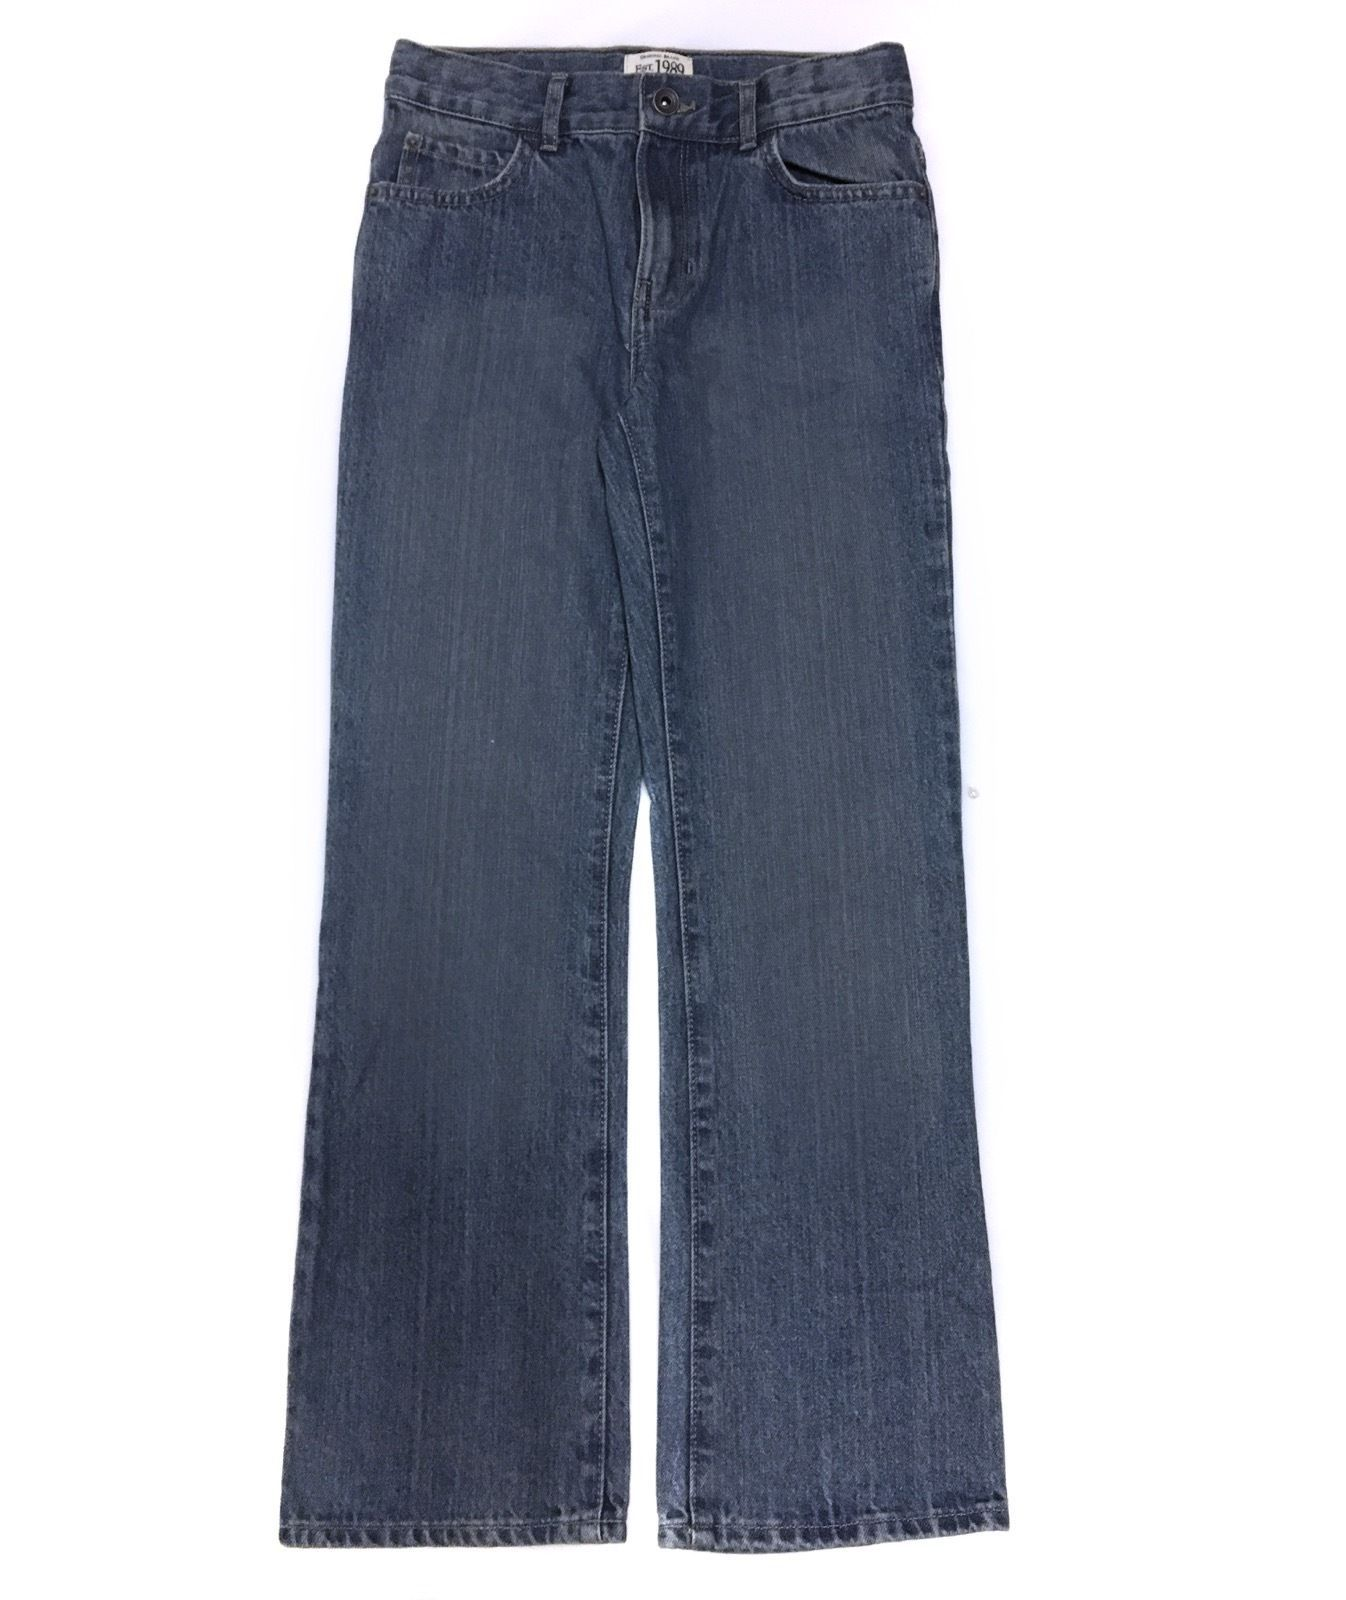 The Childrens Place Bootcut Blue Jeans Pants Denim Boys 12s 12 S Slim